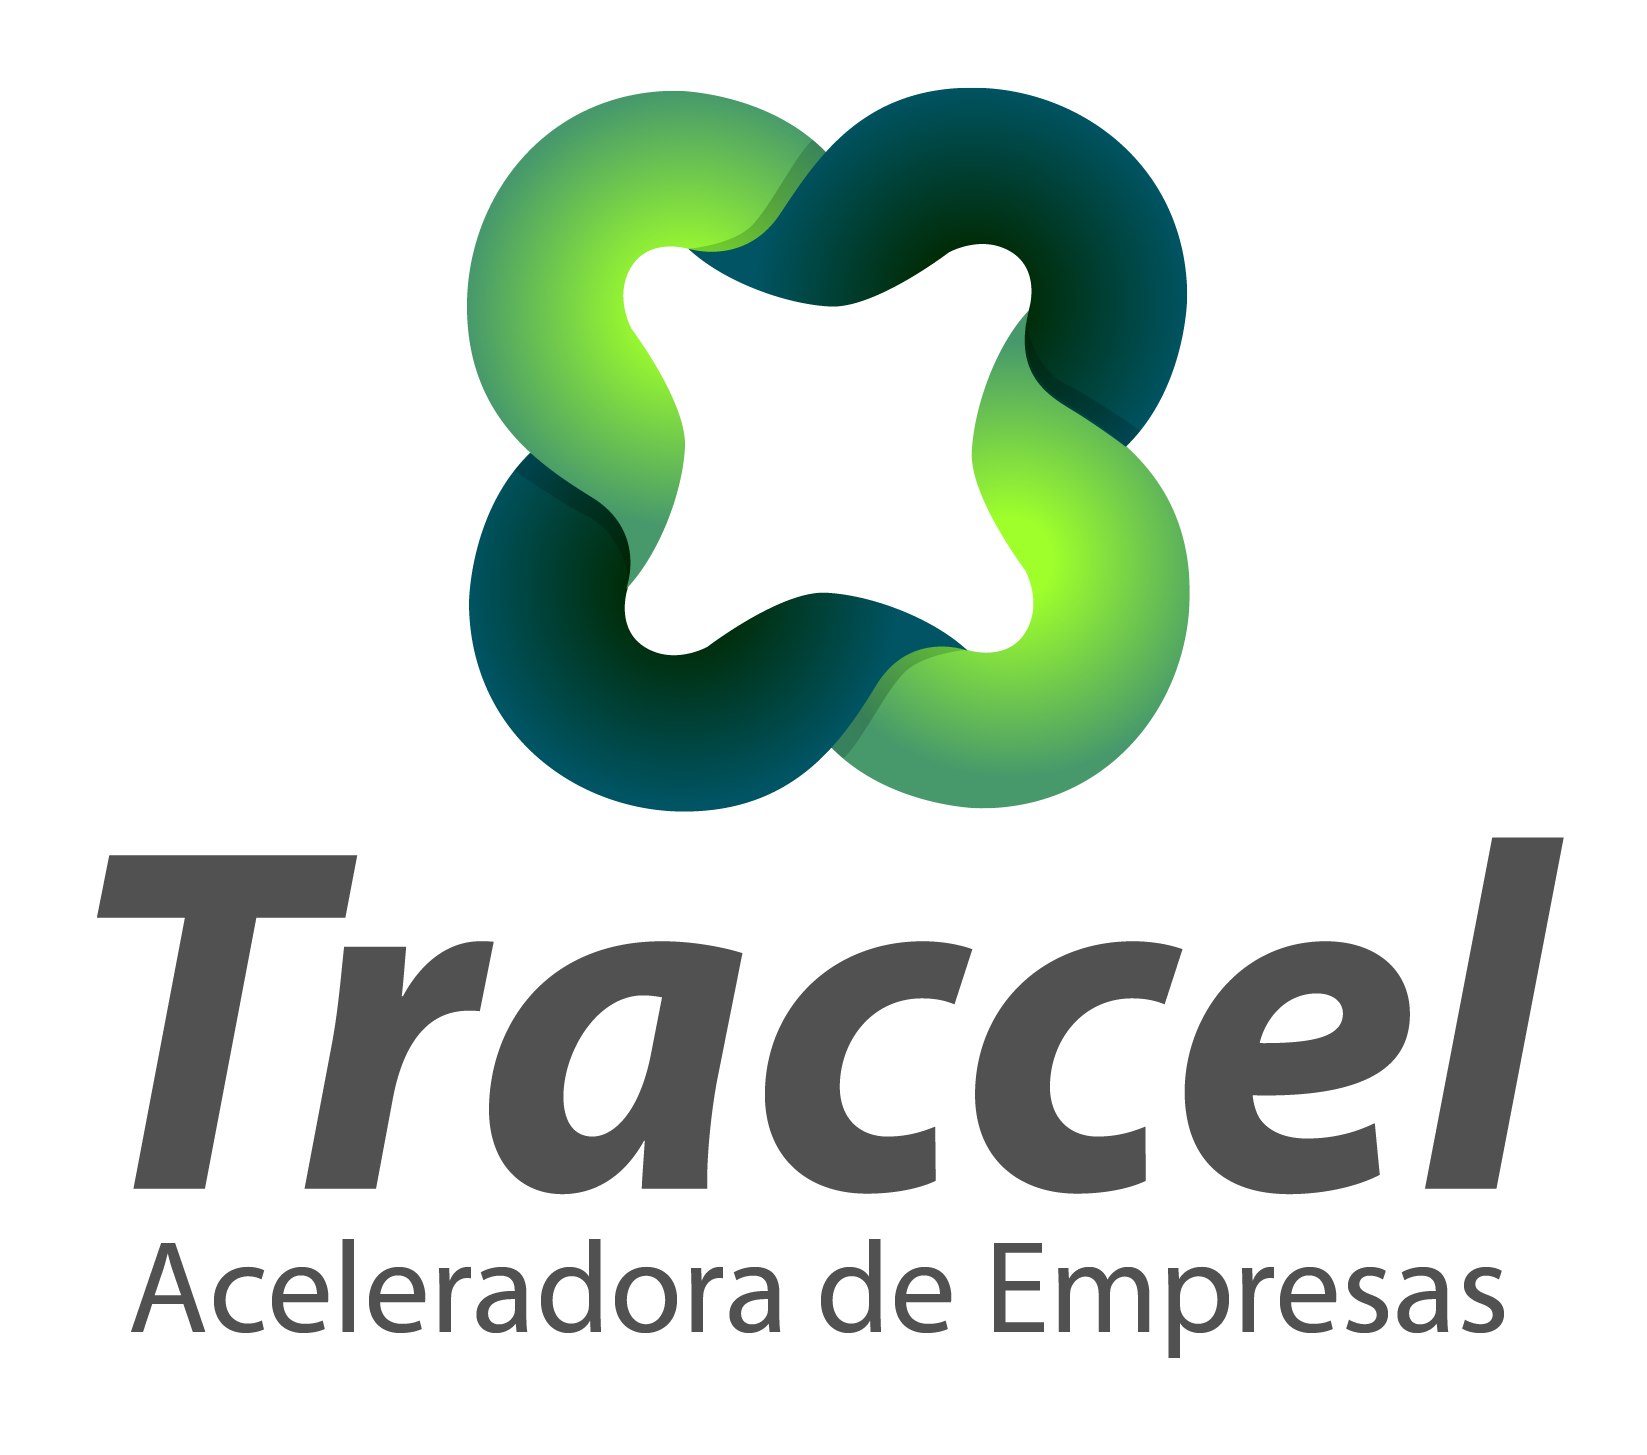 Traccel-Logo-01.png